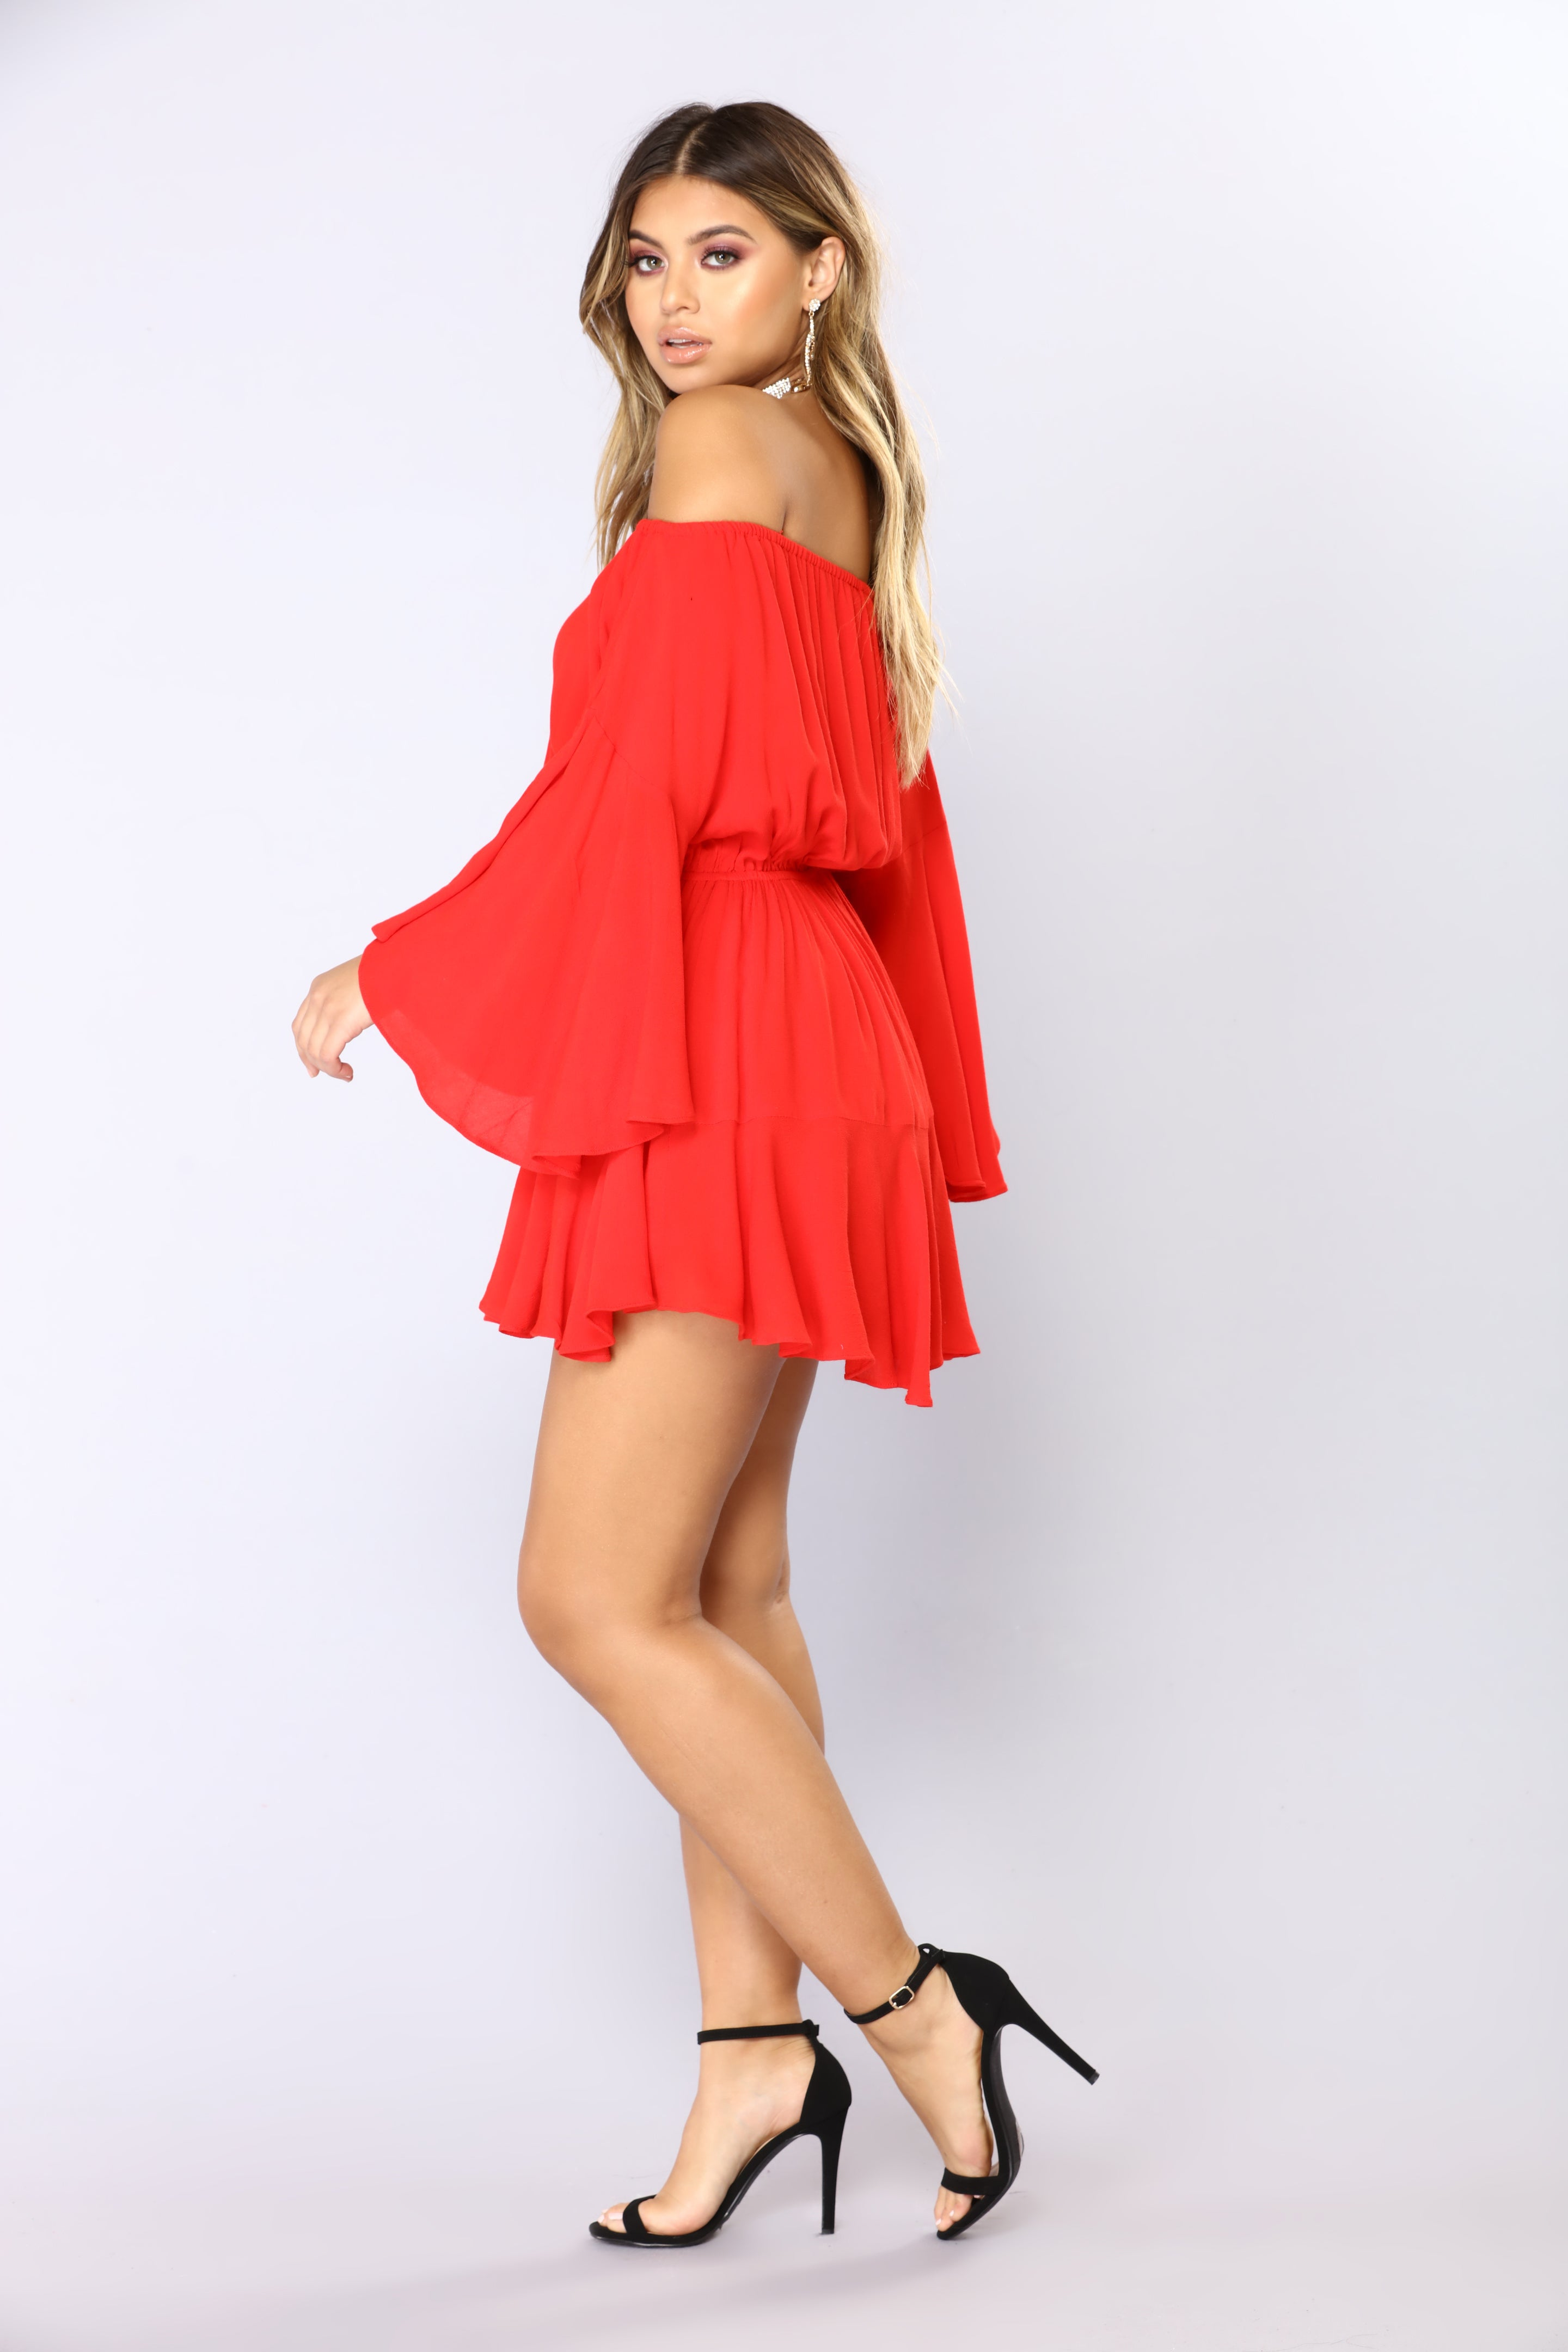 34ec525b7f48 Camellia Off Shoulder Romper - Red